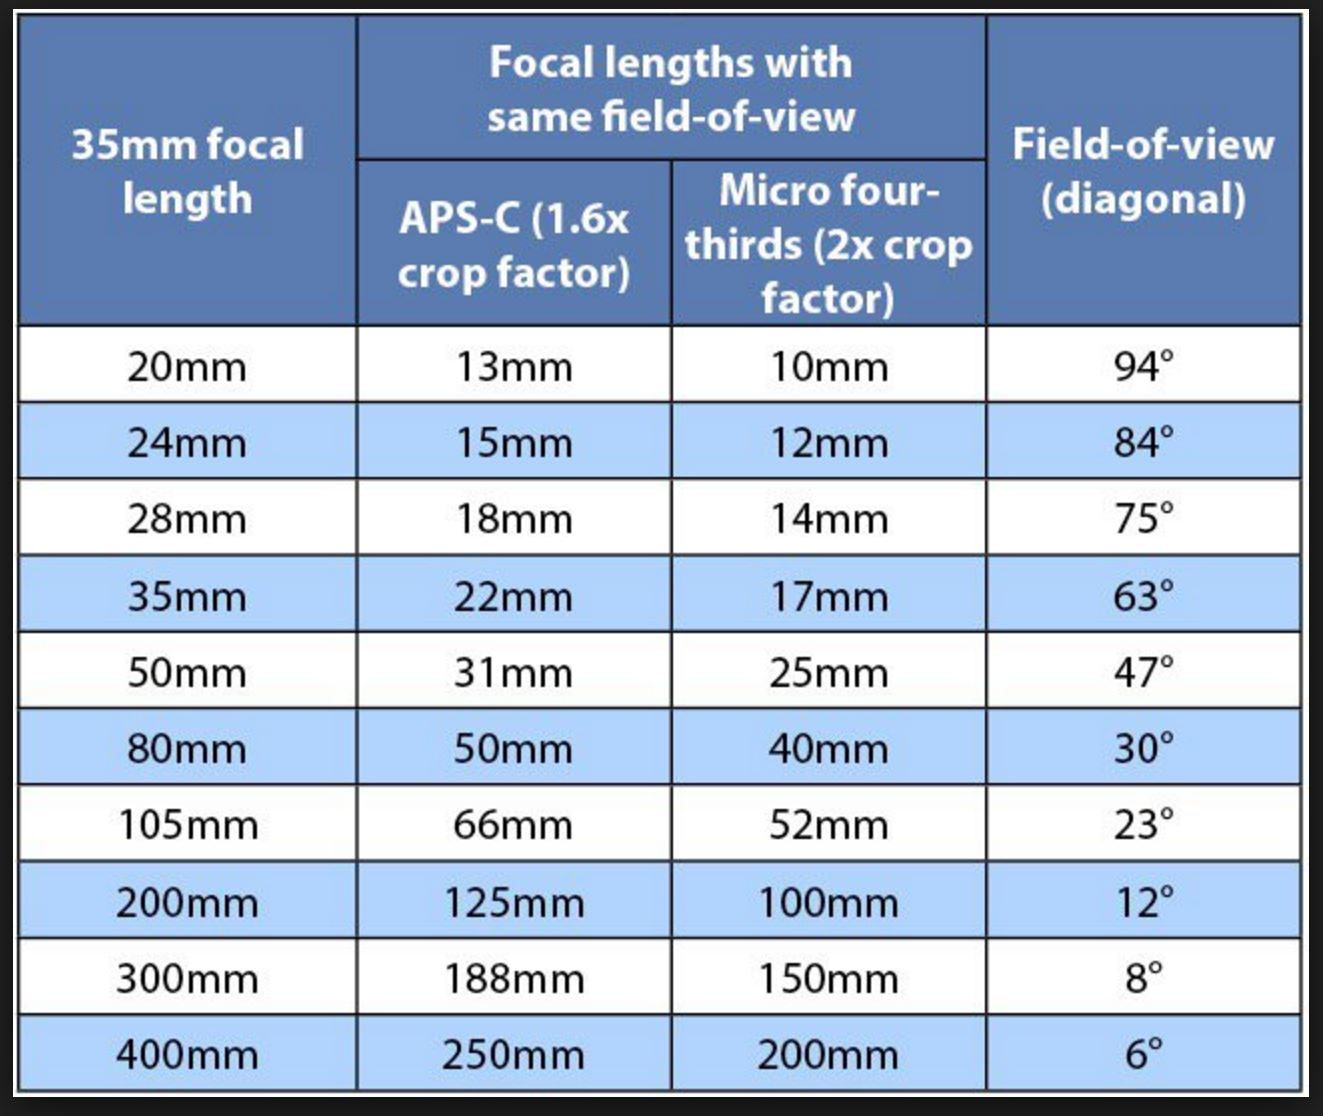 Focal lengths on different sized sensors